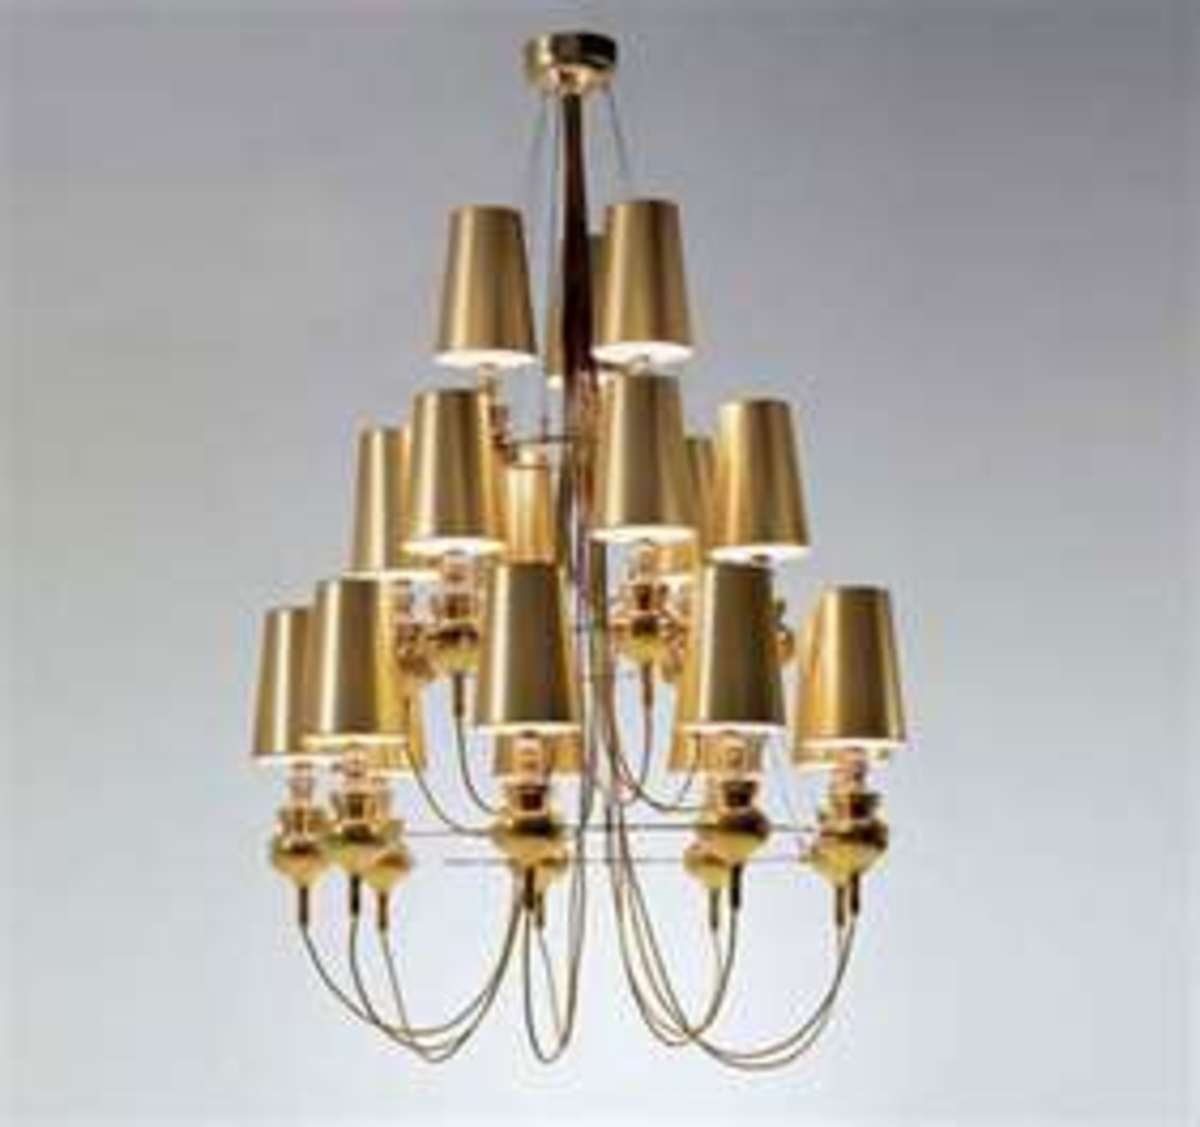 Image credit: http://totalyhomedecor.com/category/lamps-design/page/2